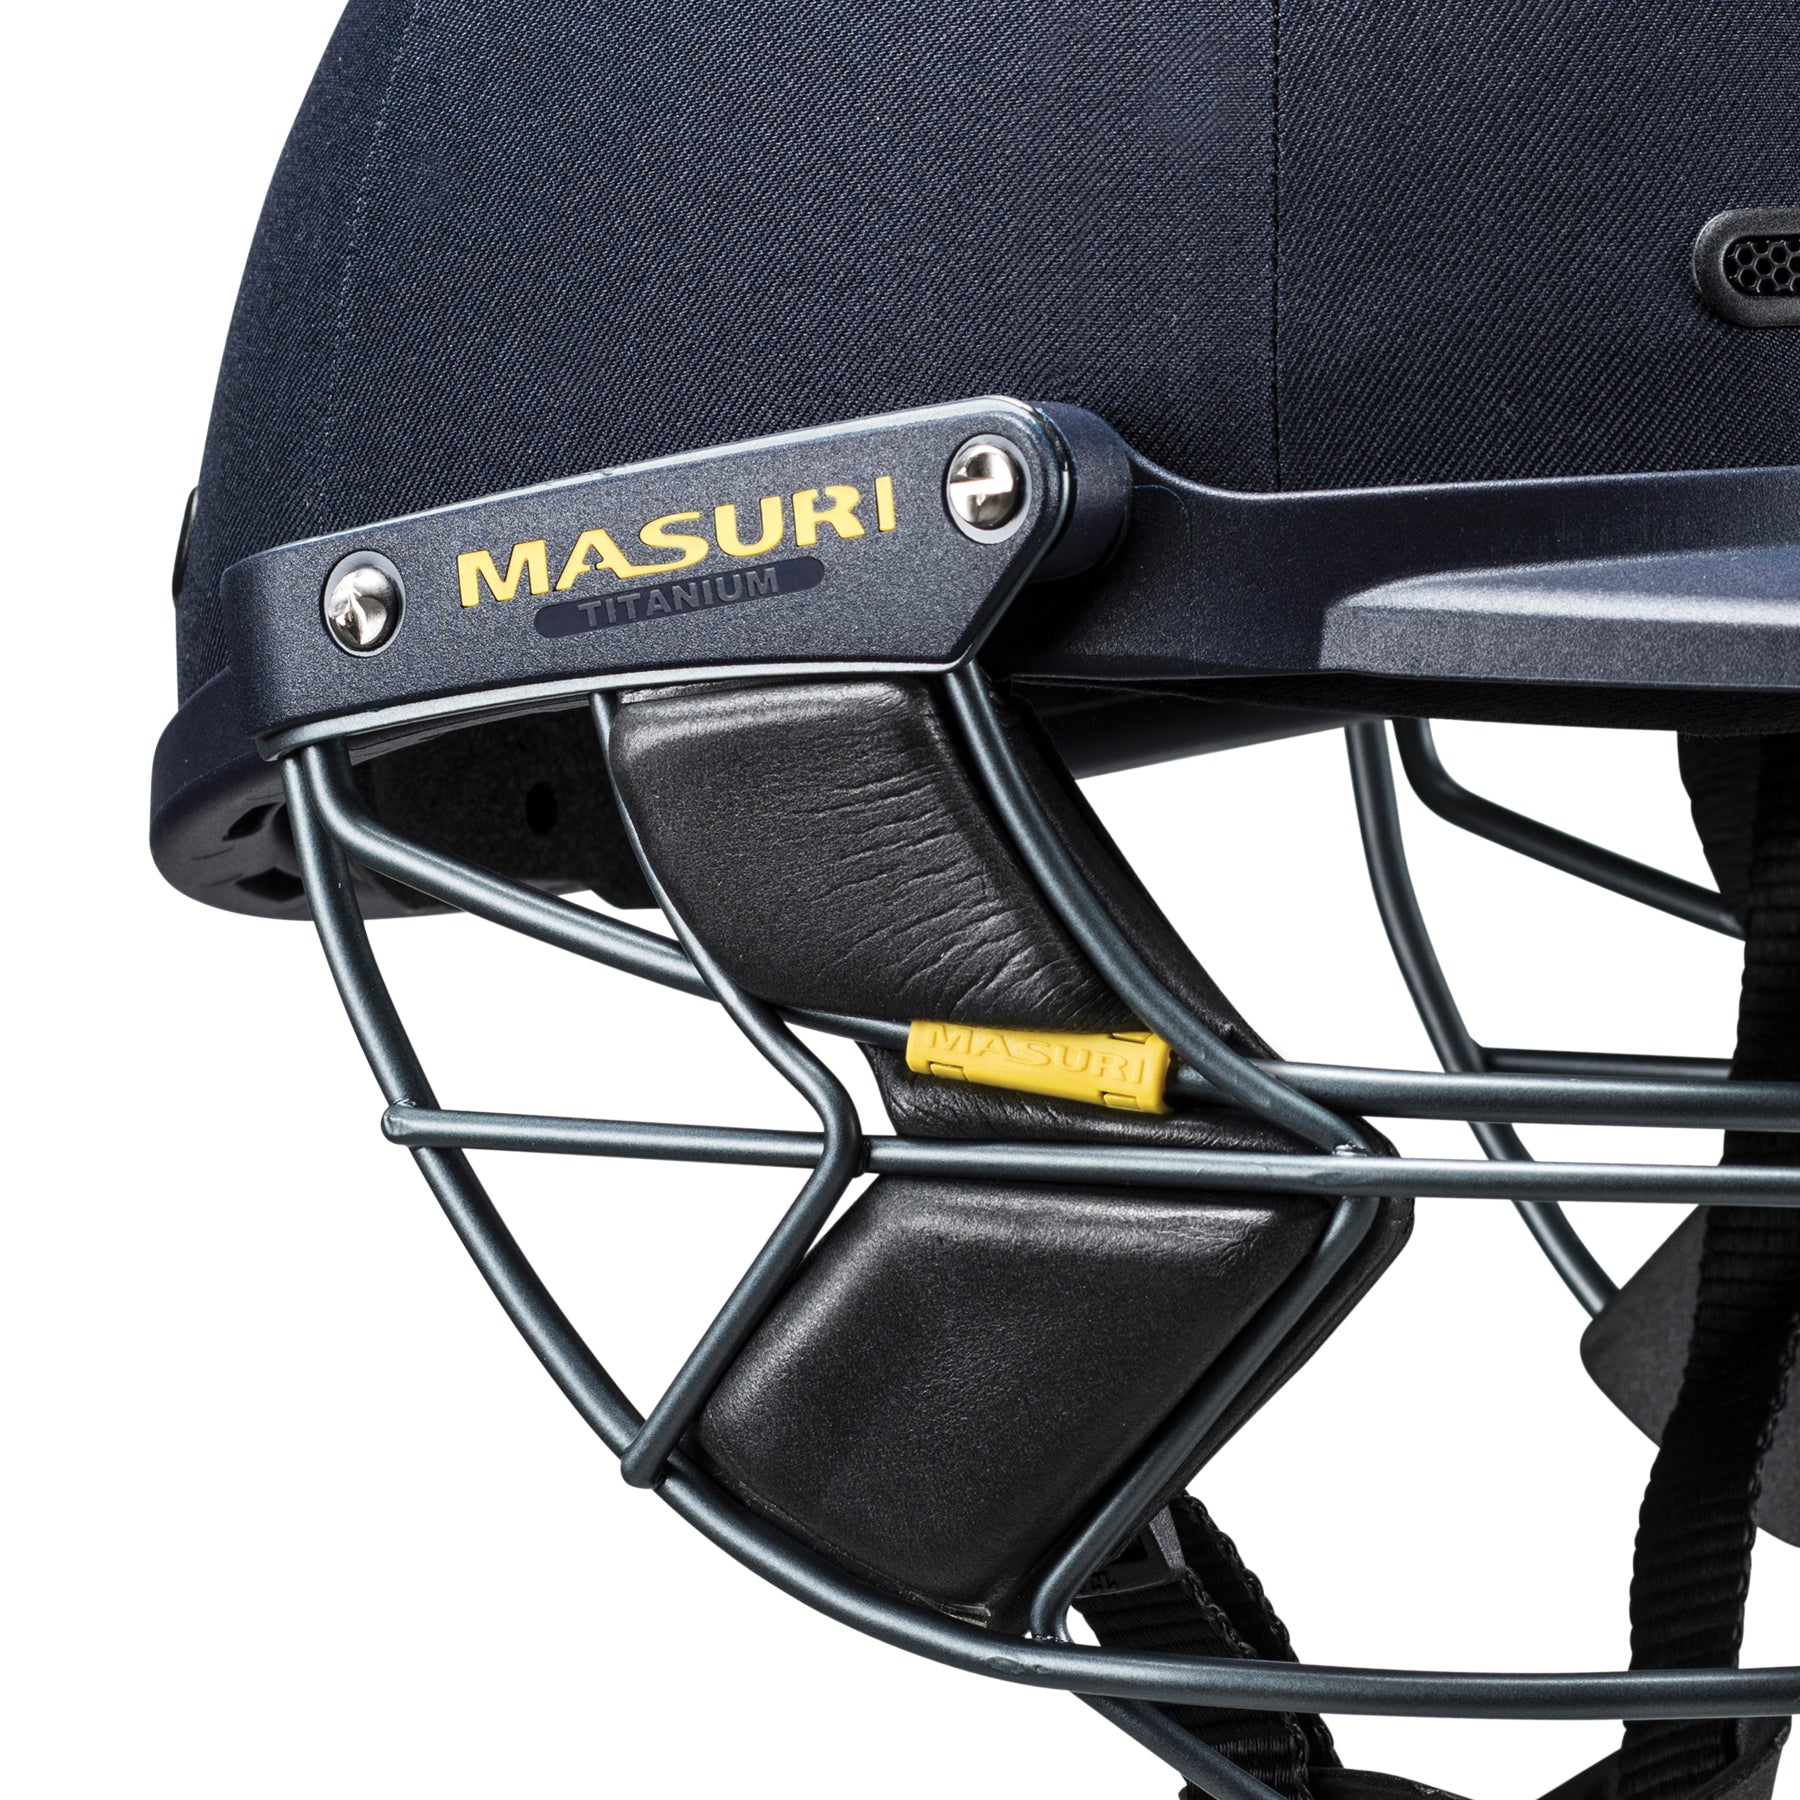 VISION SERIES E LINE TITANIUM CRICKET HELMET - TRADE ACCOUNTS